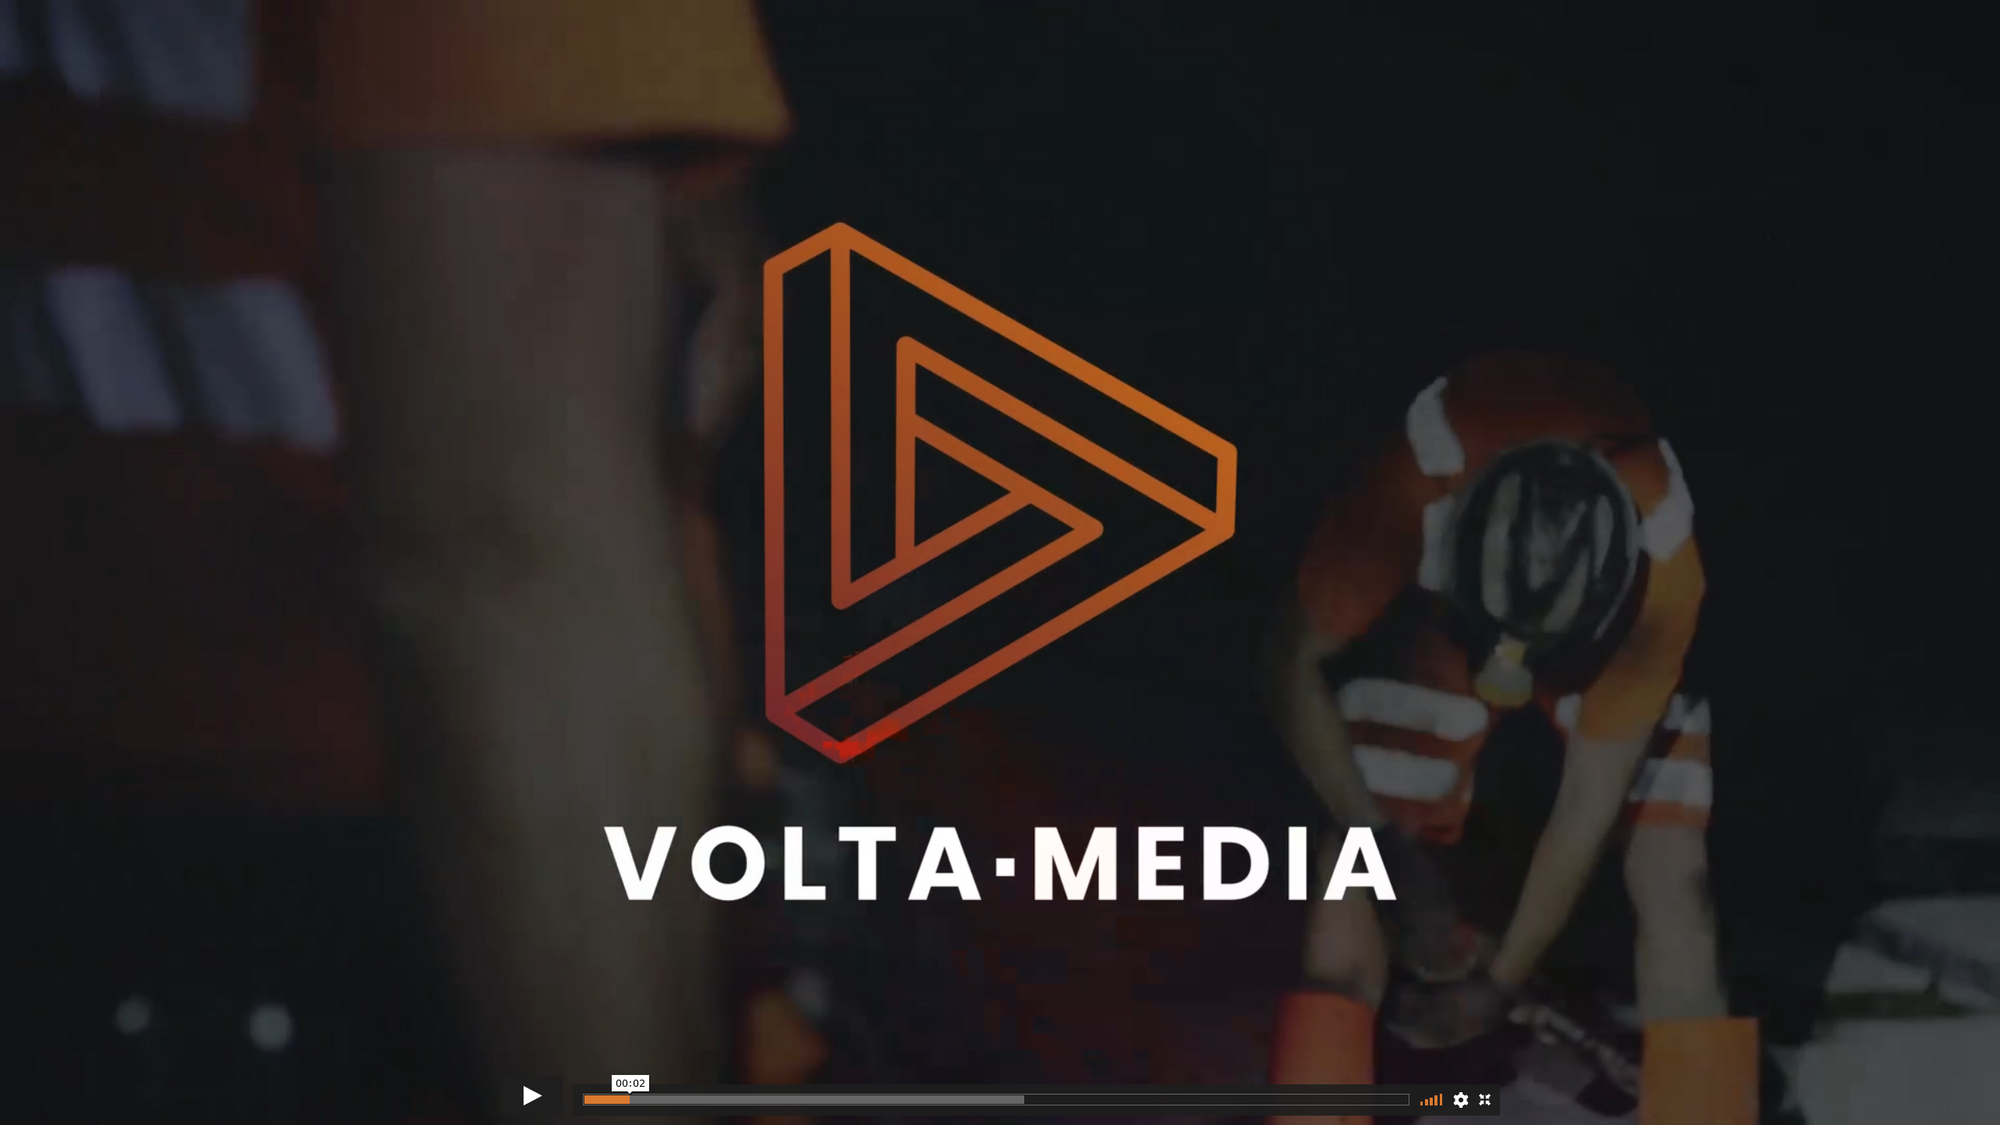 How Video Specific Graphics and Animations can Strengthen Your Brand